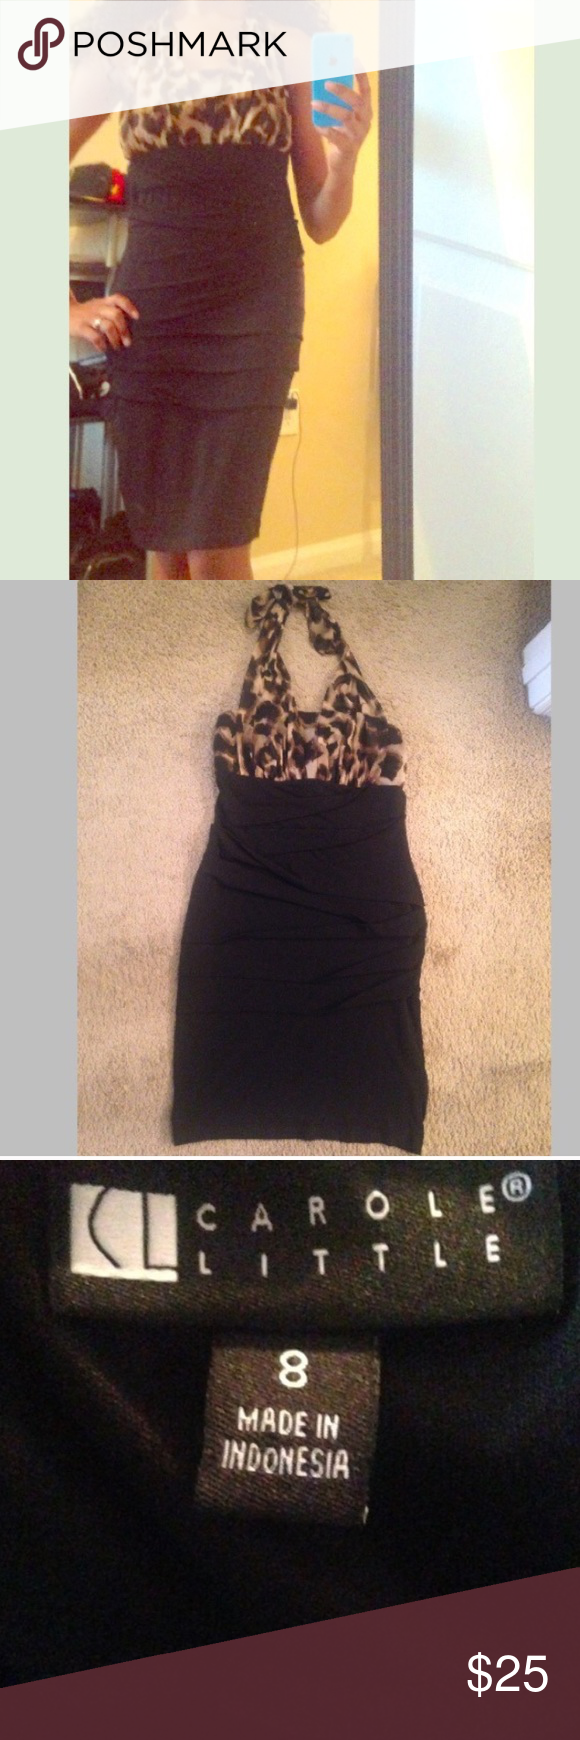 Leopard Halter Dress This cute black leopard halter dress is very stretchy, ties on the back of neck. Great condition! Perfect for date night  Dresses Midi